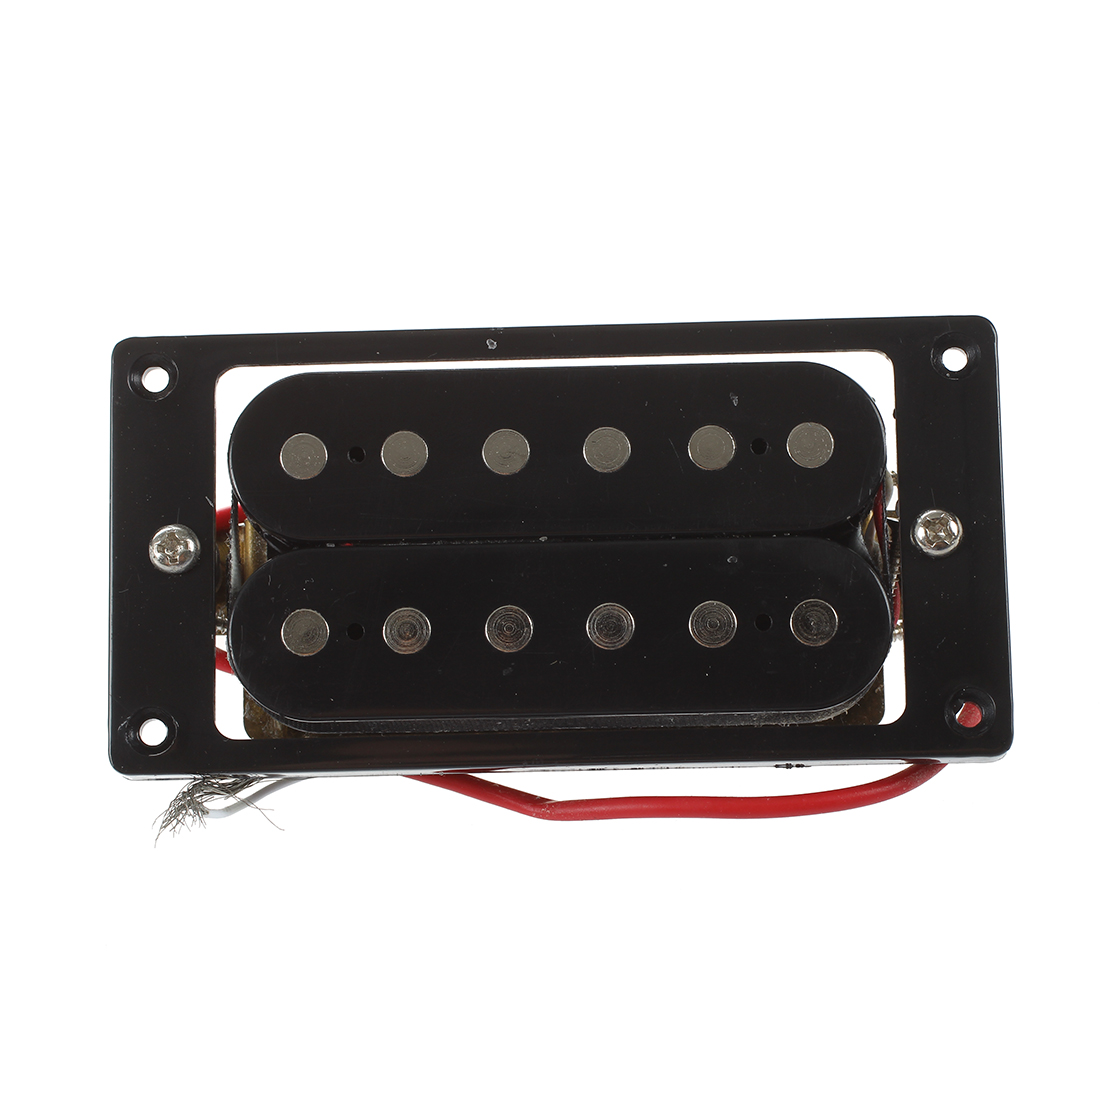 HOT 2PCs(1 set)Black Humbucker Double Coil Electric Guitar Pickups + Frame Screw 2pcs chrome double coil humbucker pickups neck